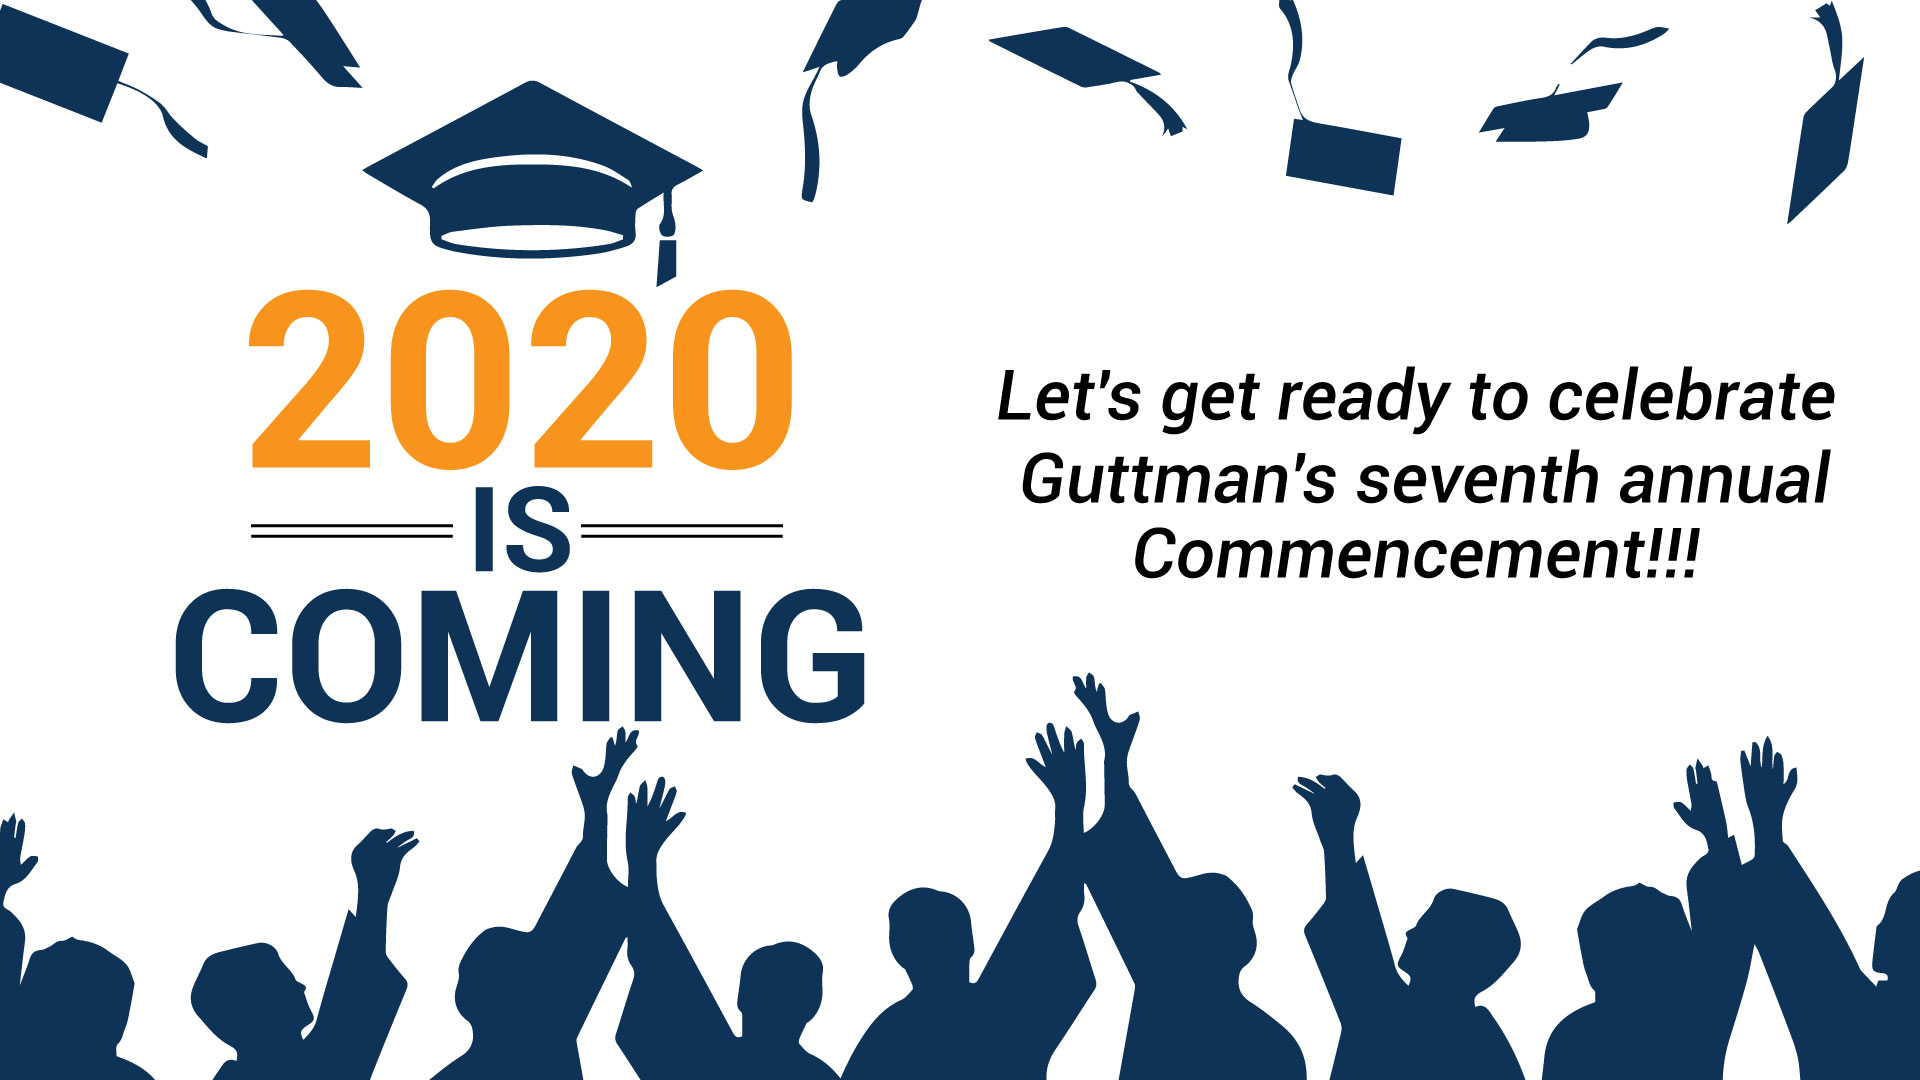 Commencement 2020 is coming! Let's get ready to celebrate Guttman's seventh annual Commencement!